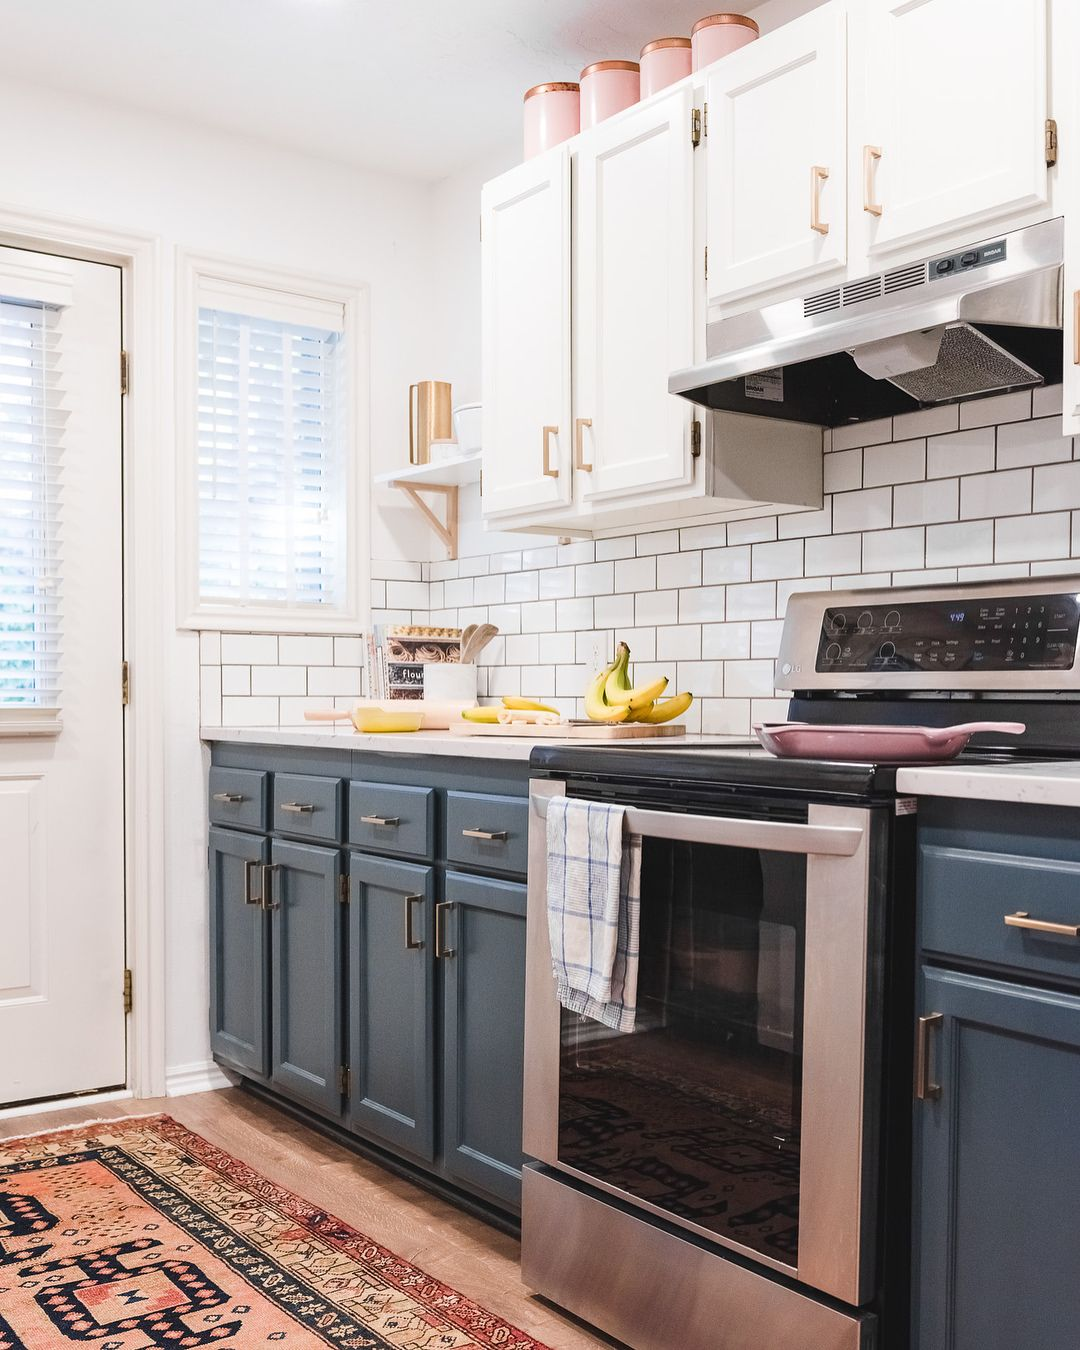 How Do You Improve A Small Galley Kitchen With Poor Lighting Swipe To See The Before You Start By Kitchen Trends Kitchen Renovation New Kitchen Cabinets